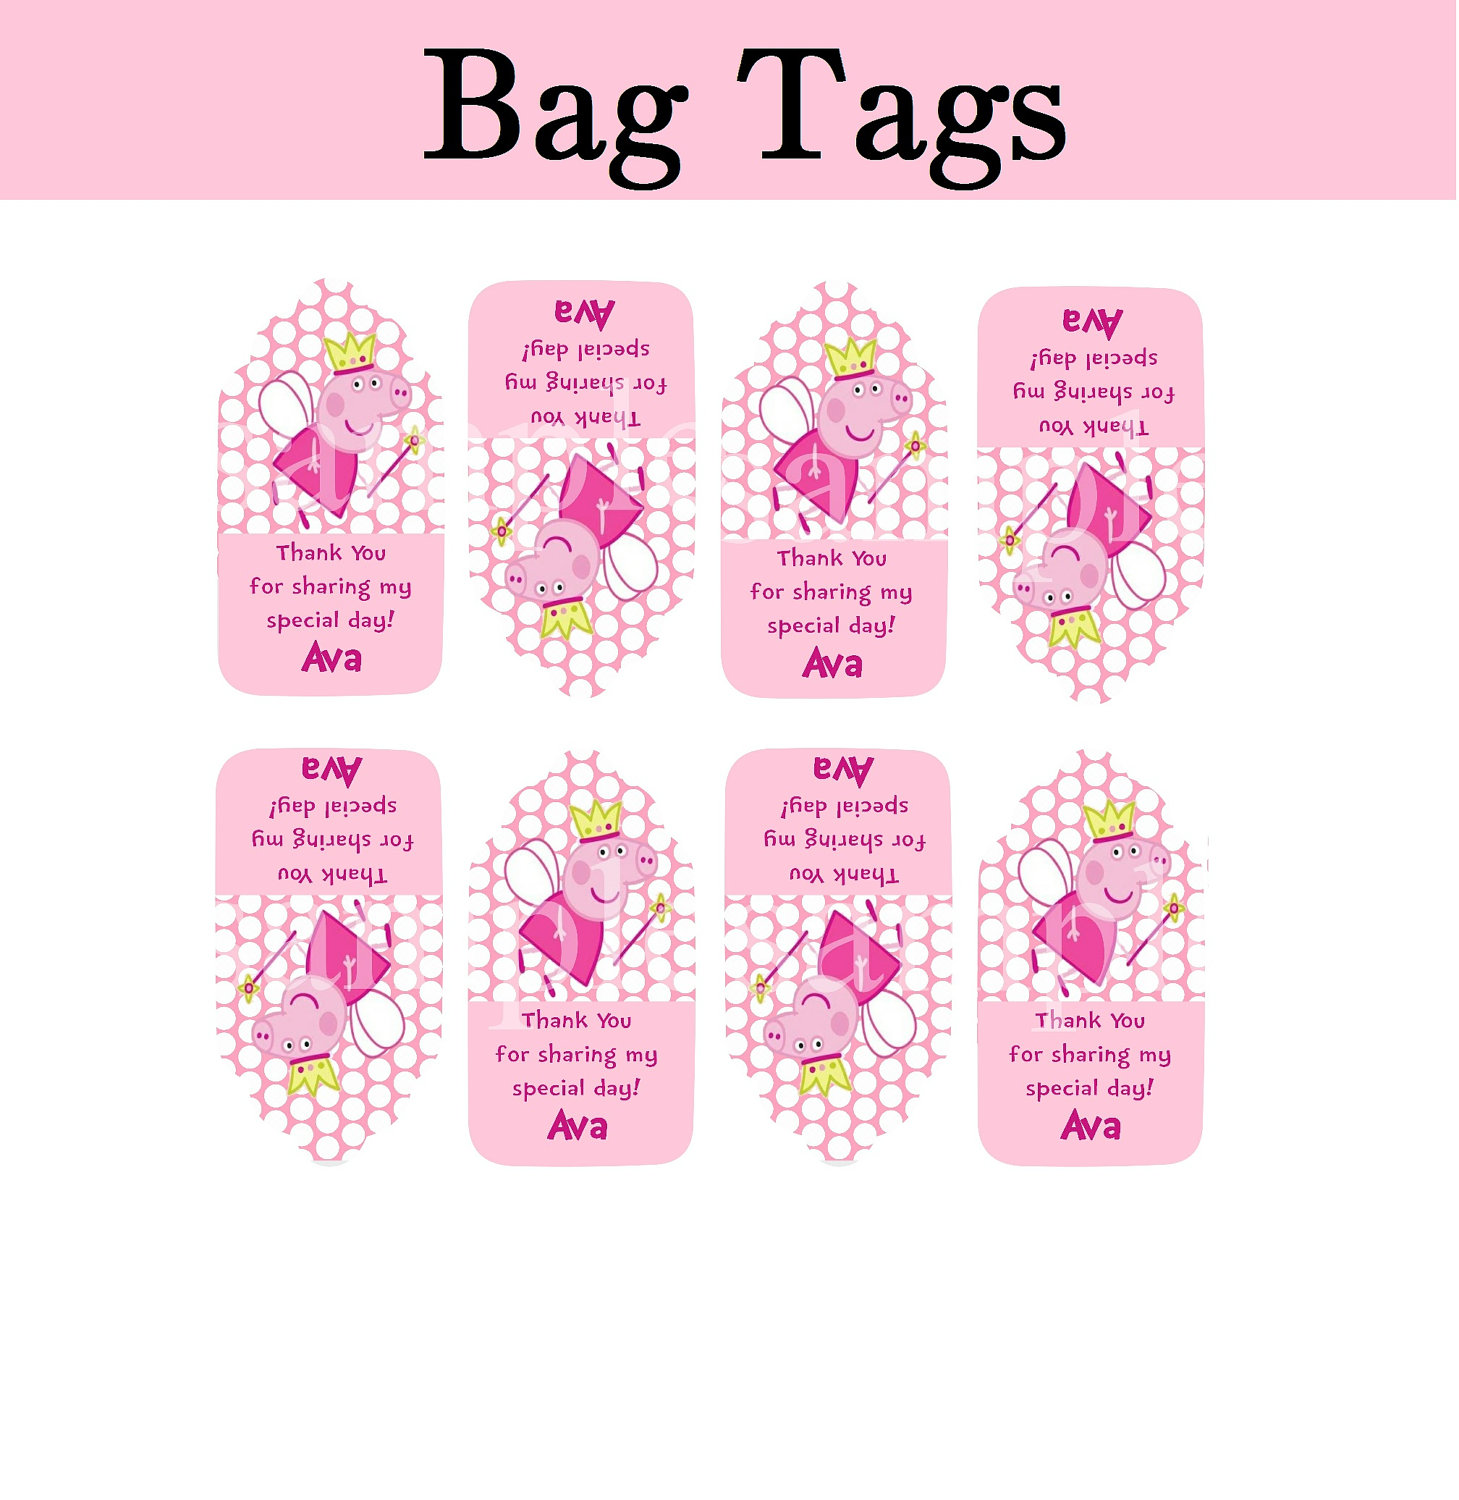 birthday bag tags ; birthday-bag-tags-7919c5ea3534b55e05a209de12d001c2